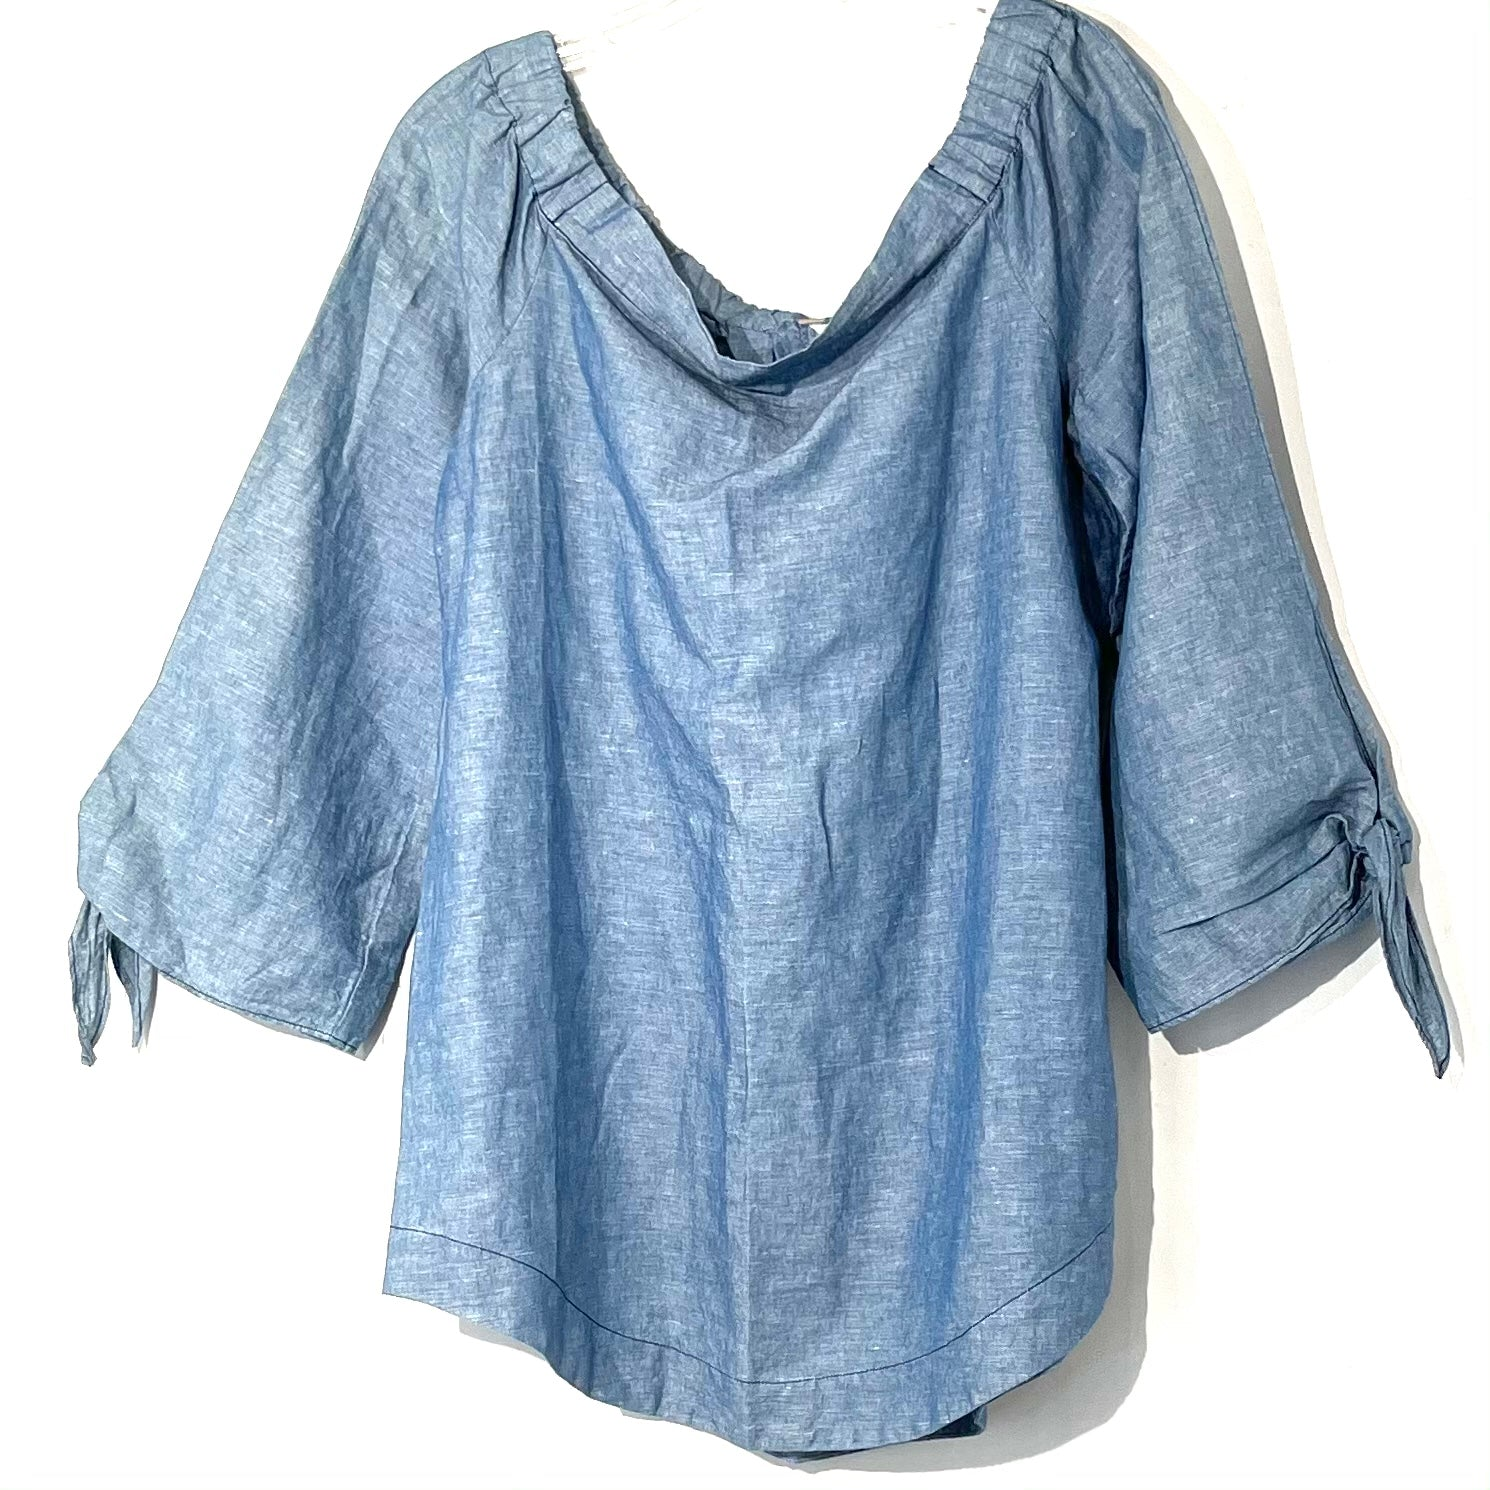 Primary Photo - BRAND: FREE PEOPLE <BR>STYLE: TOP LONG SLEEVE <BR>COLOR: BLUE<BR>SIZE: M <BR>SKU: 262-26275-74382<BR>OFF SHOULDER STYLE